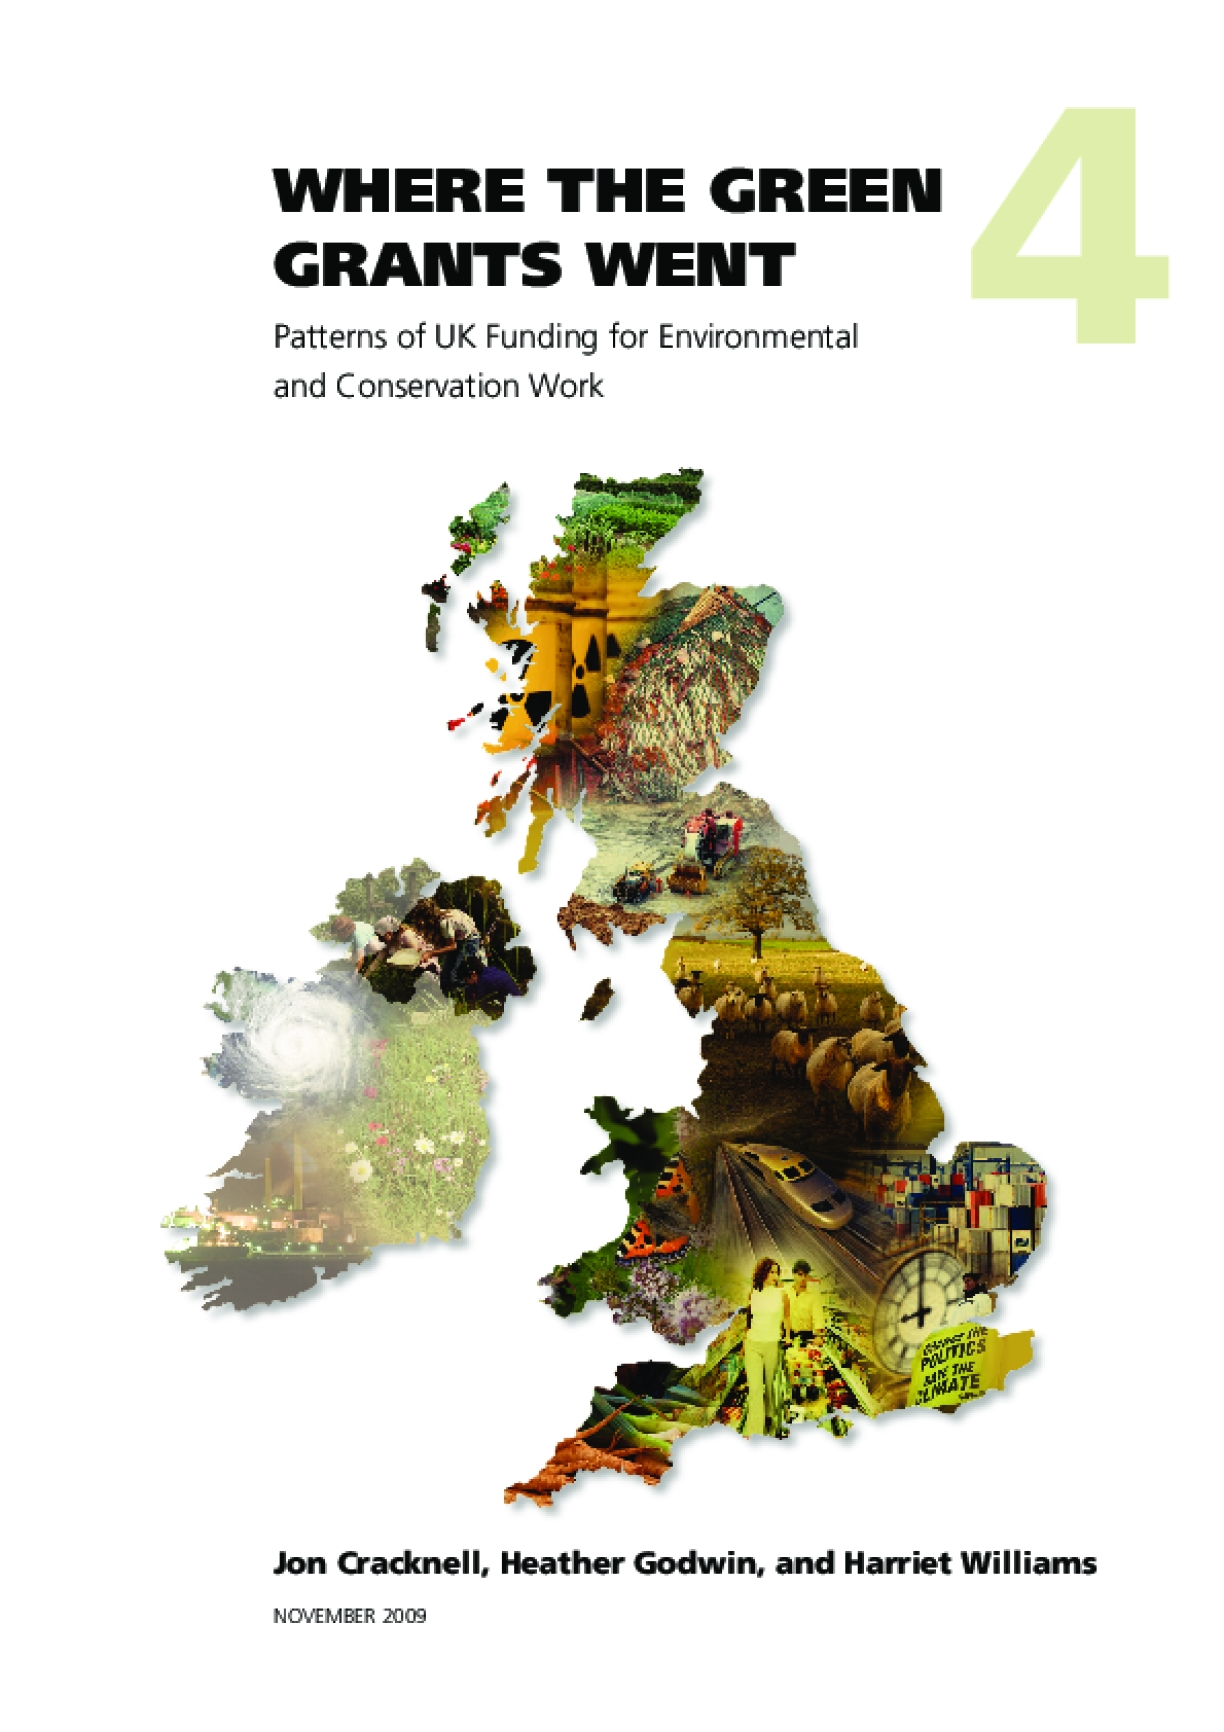 Where the Green Grants Went: Patterns of UK Funding for Environmental and Conservation Work